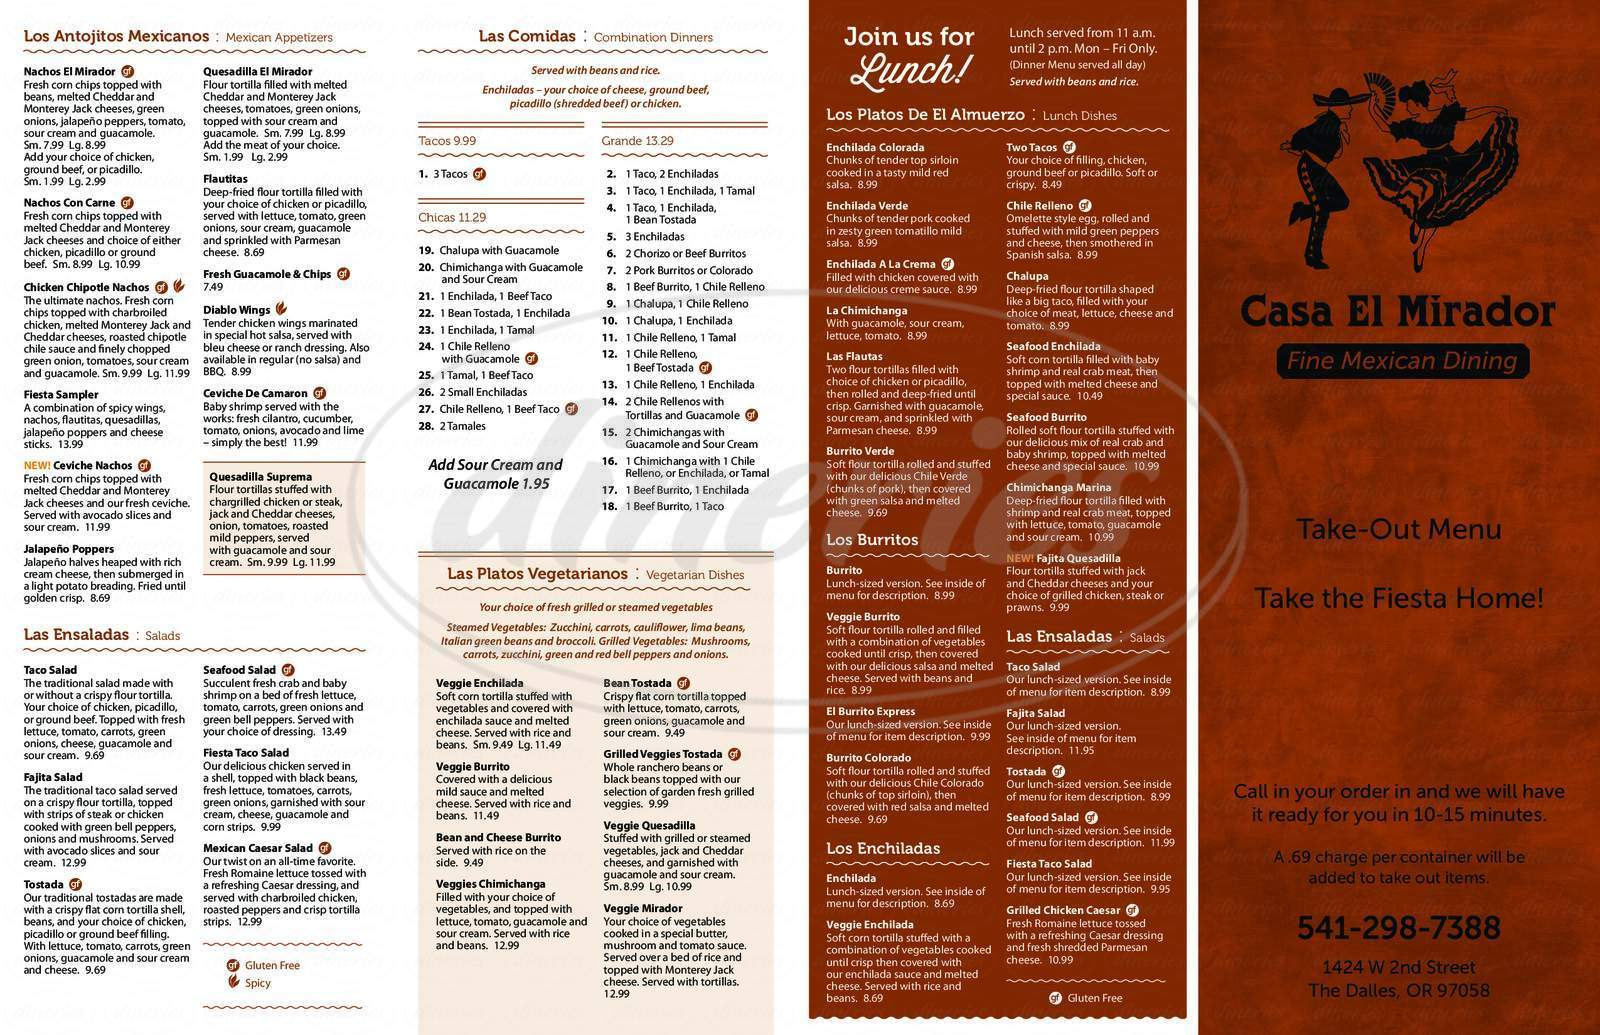 menu for Casa El Mirador